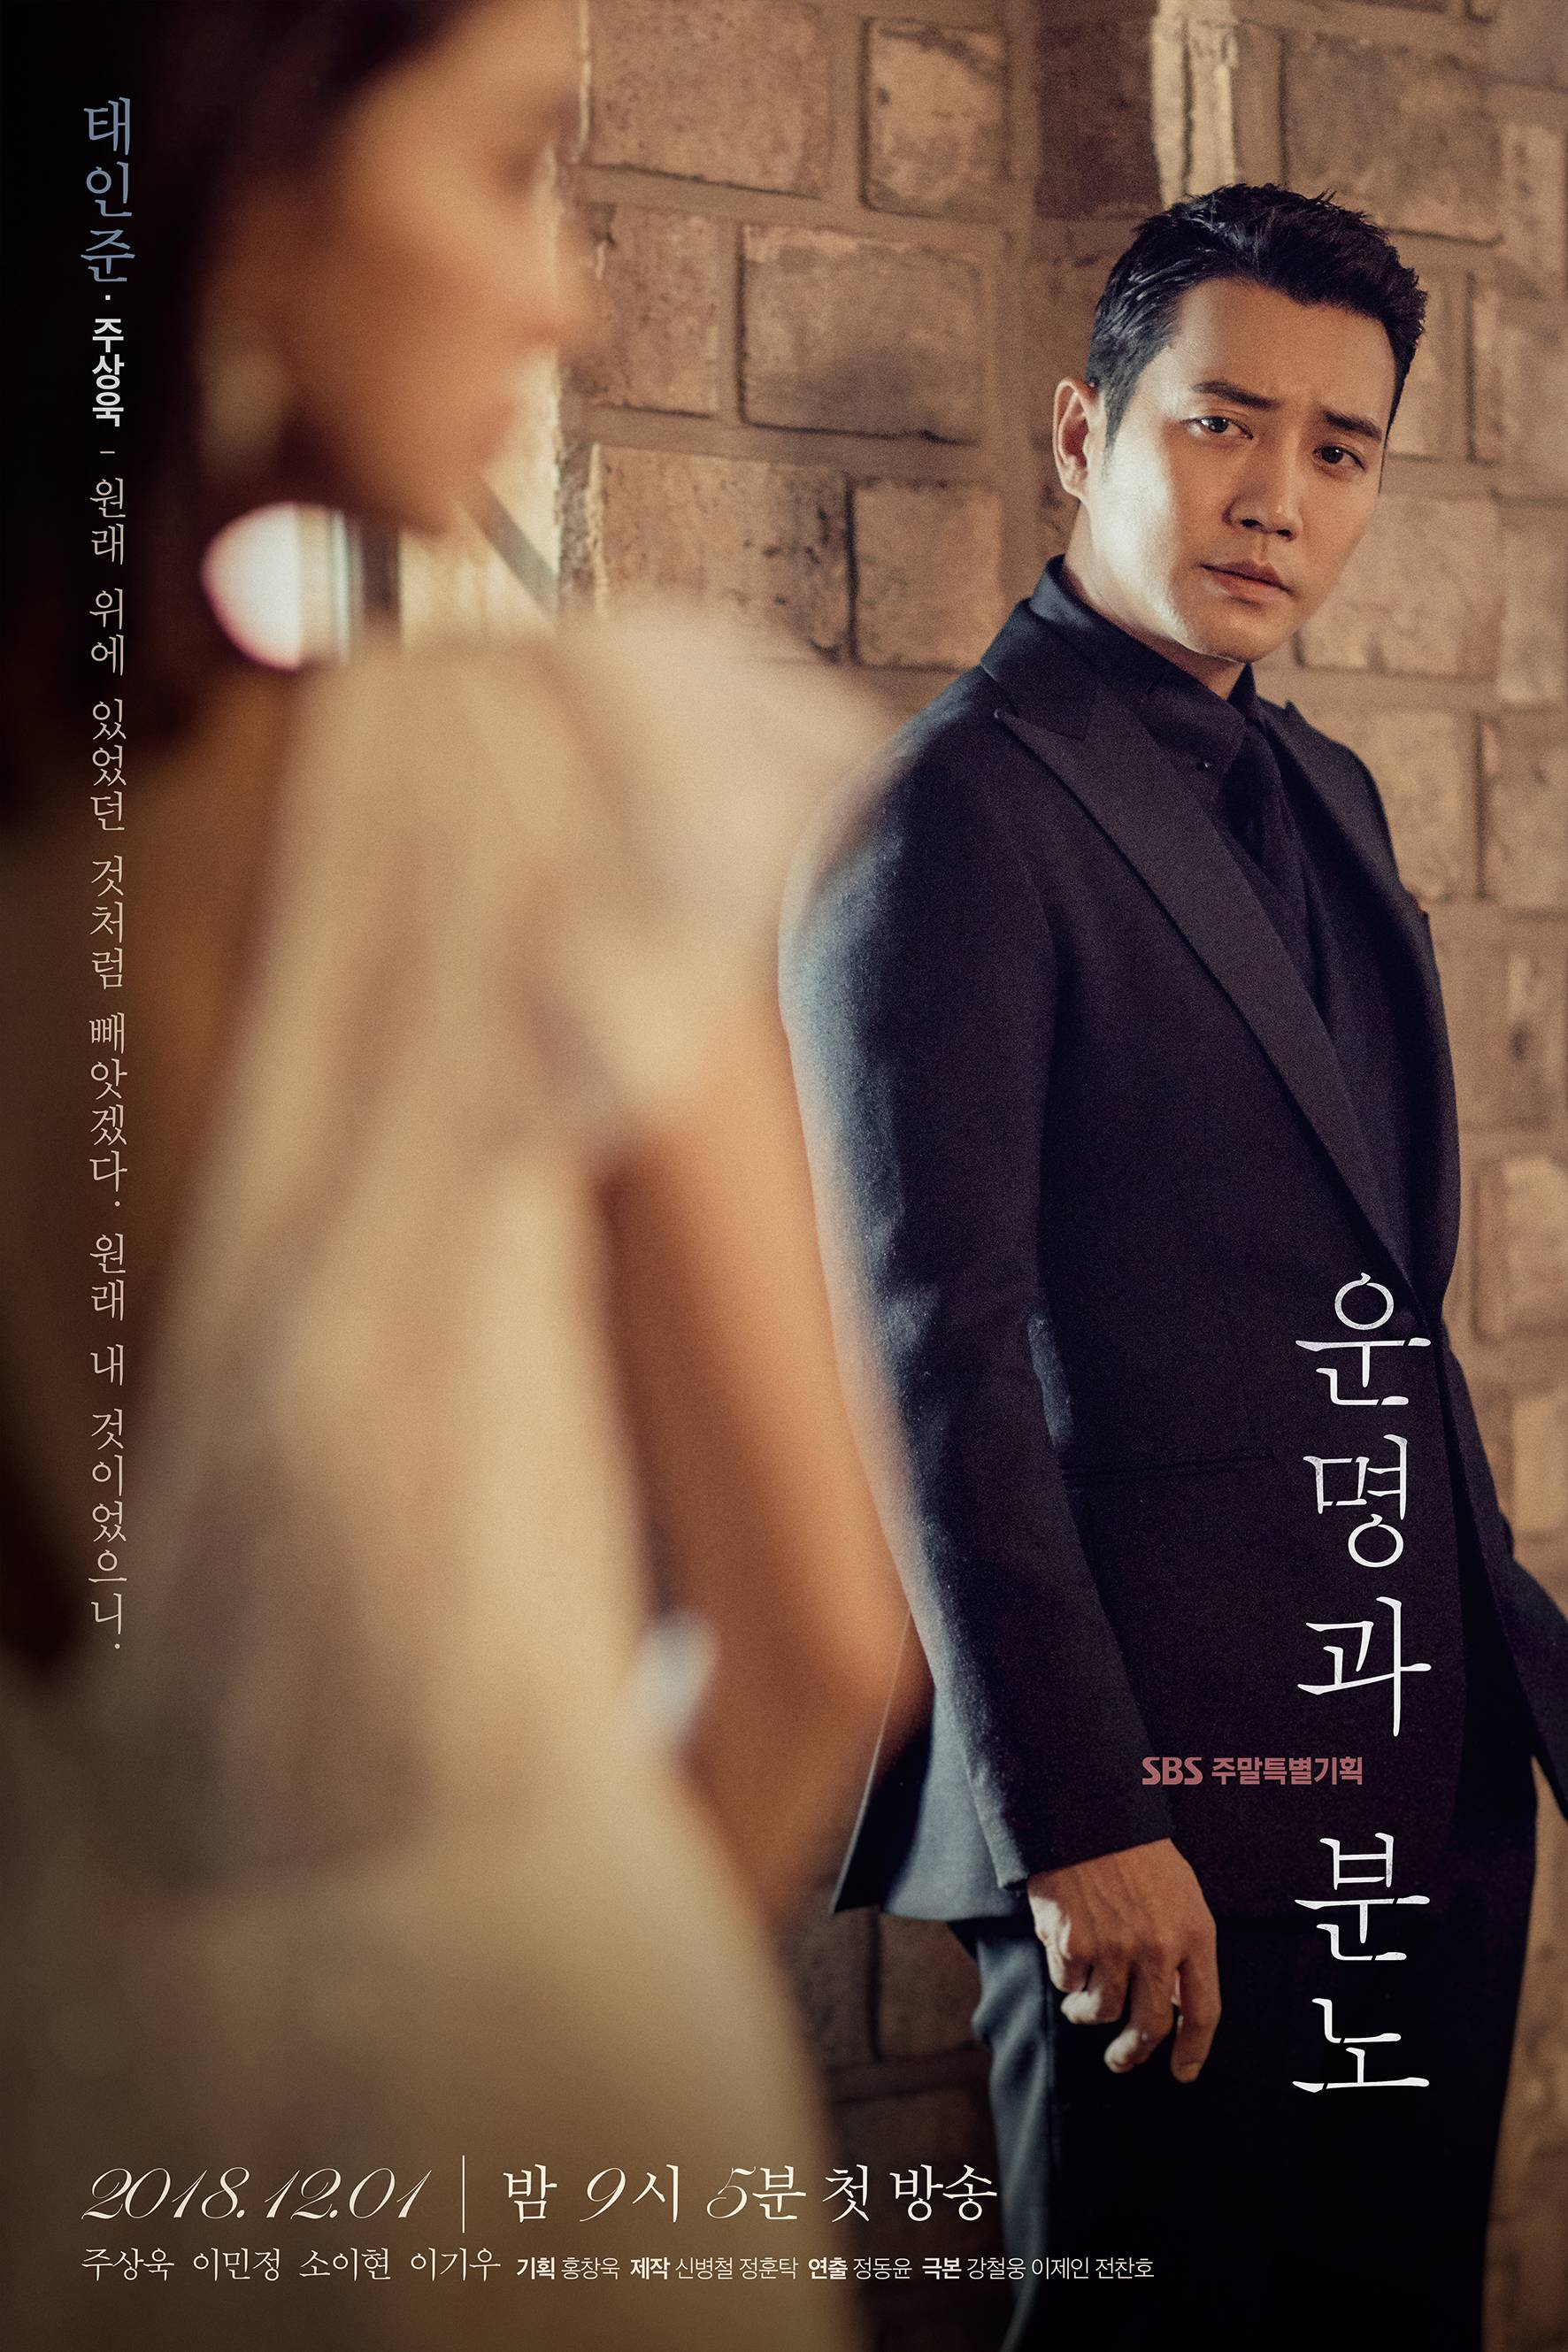 Photos New Posters Added For The Upcoming Korean Drama